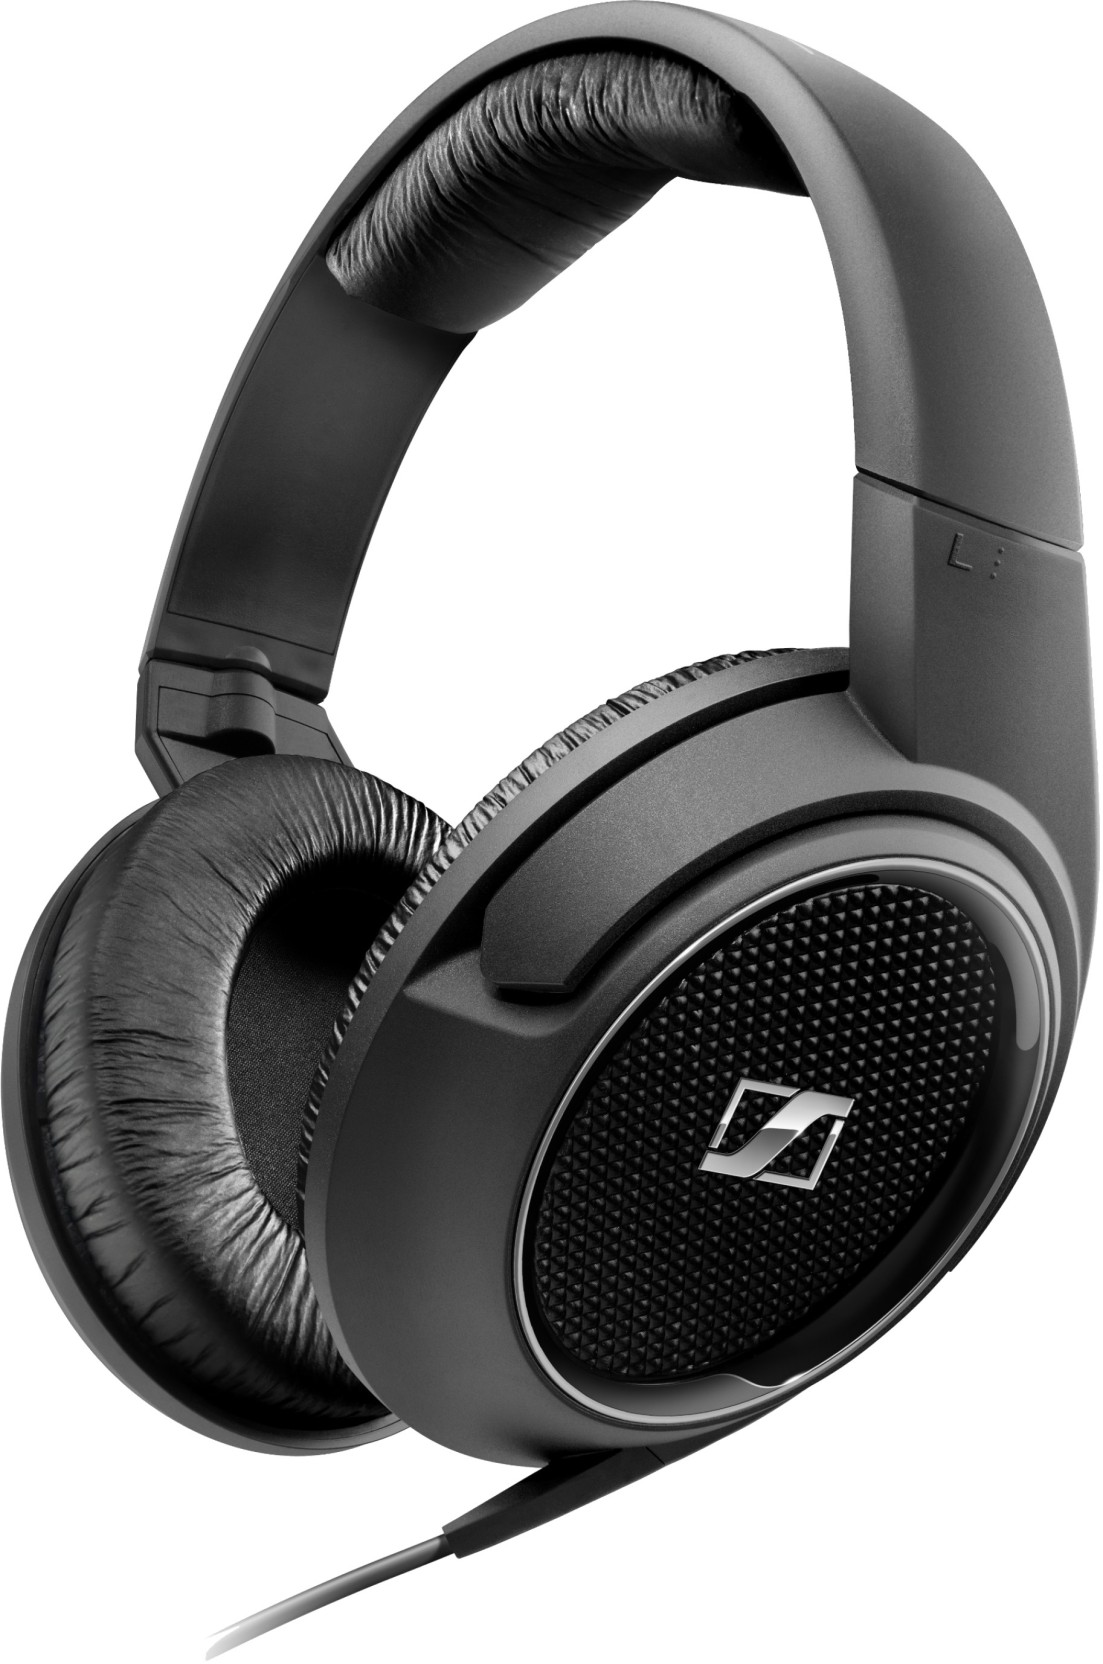 Sennheiser HD 429 Wired Headphone Price in India